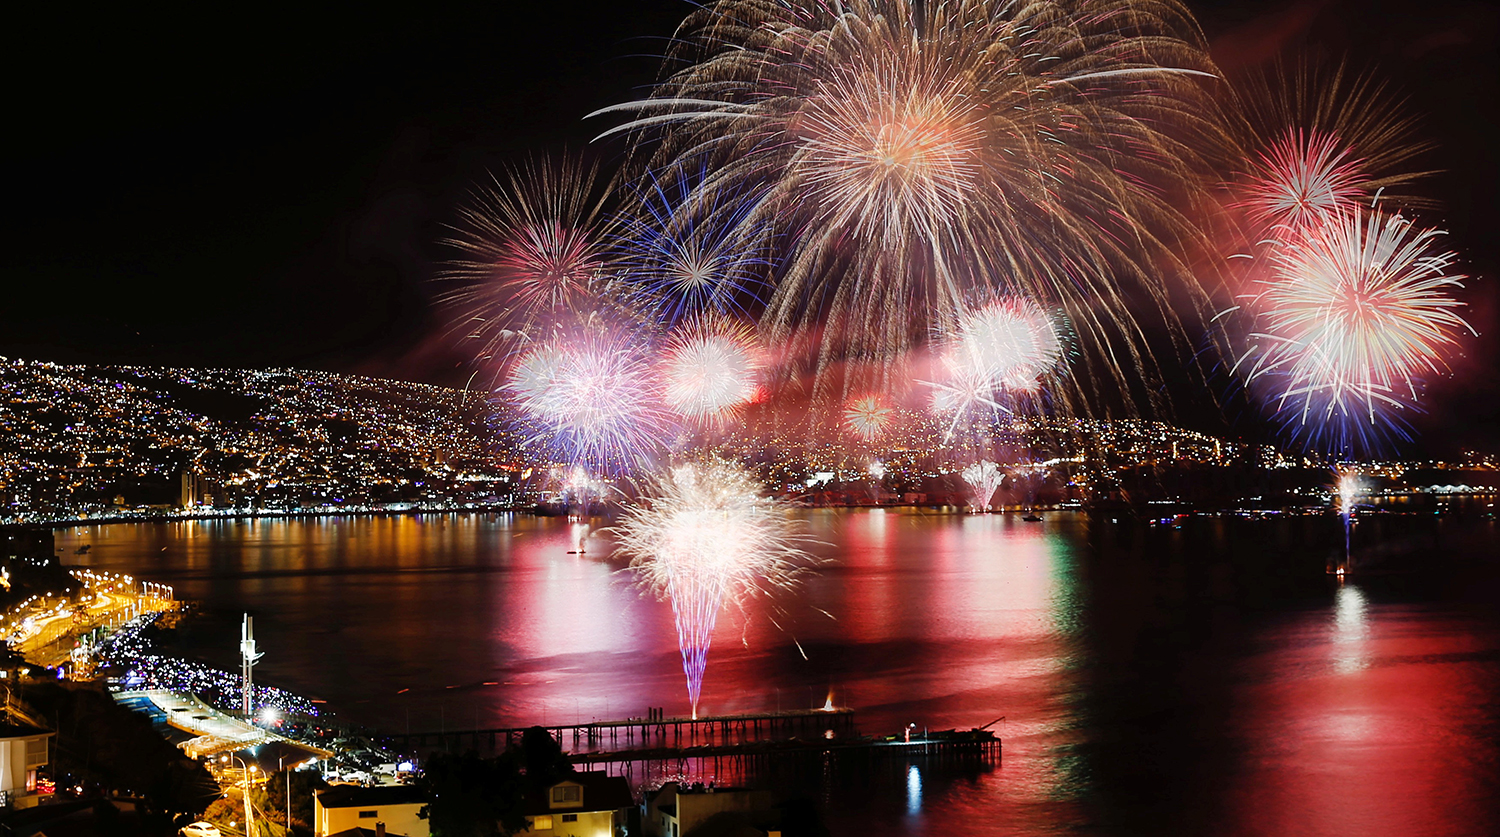 Fireworks explode during a pyrotechnic show to celebrate the new year in the coastal city of Valparaiso.